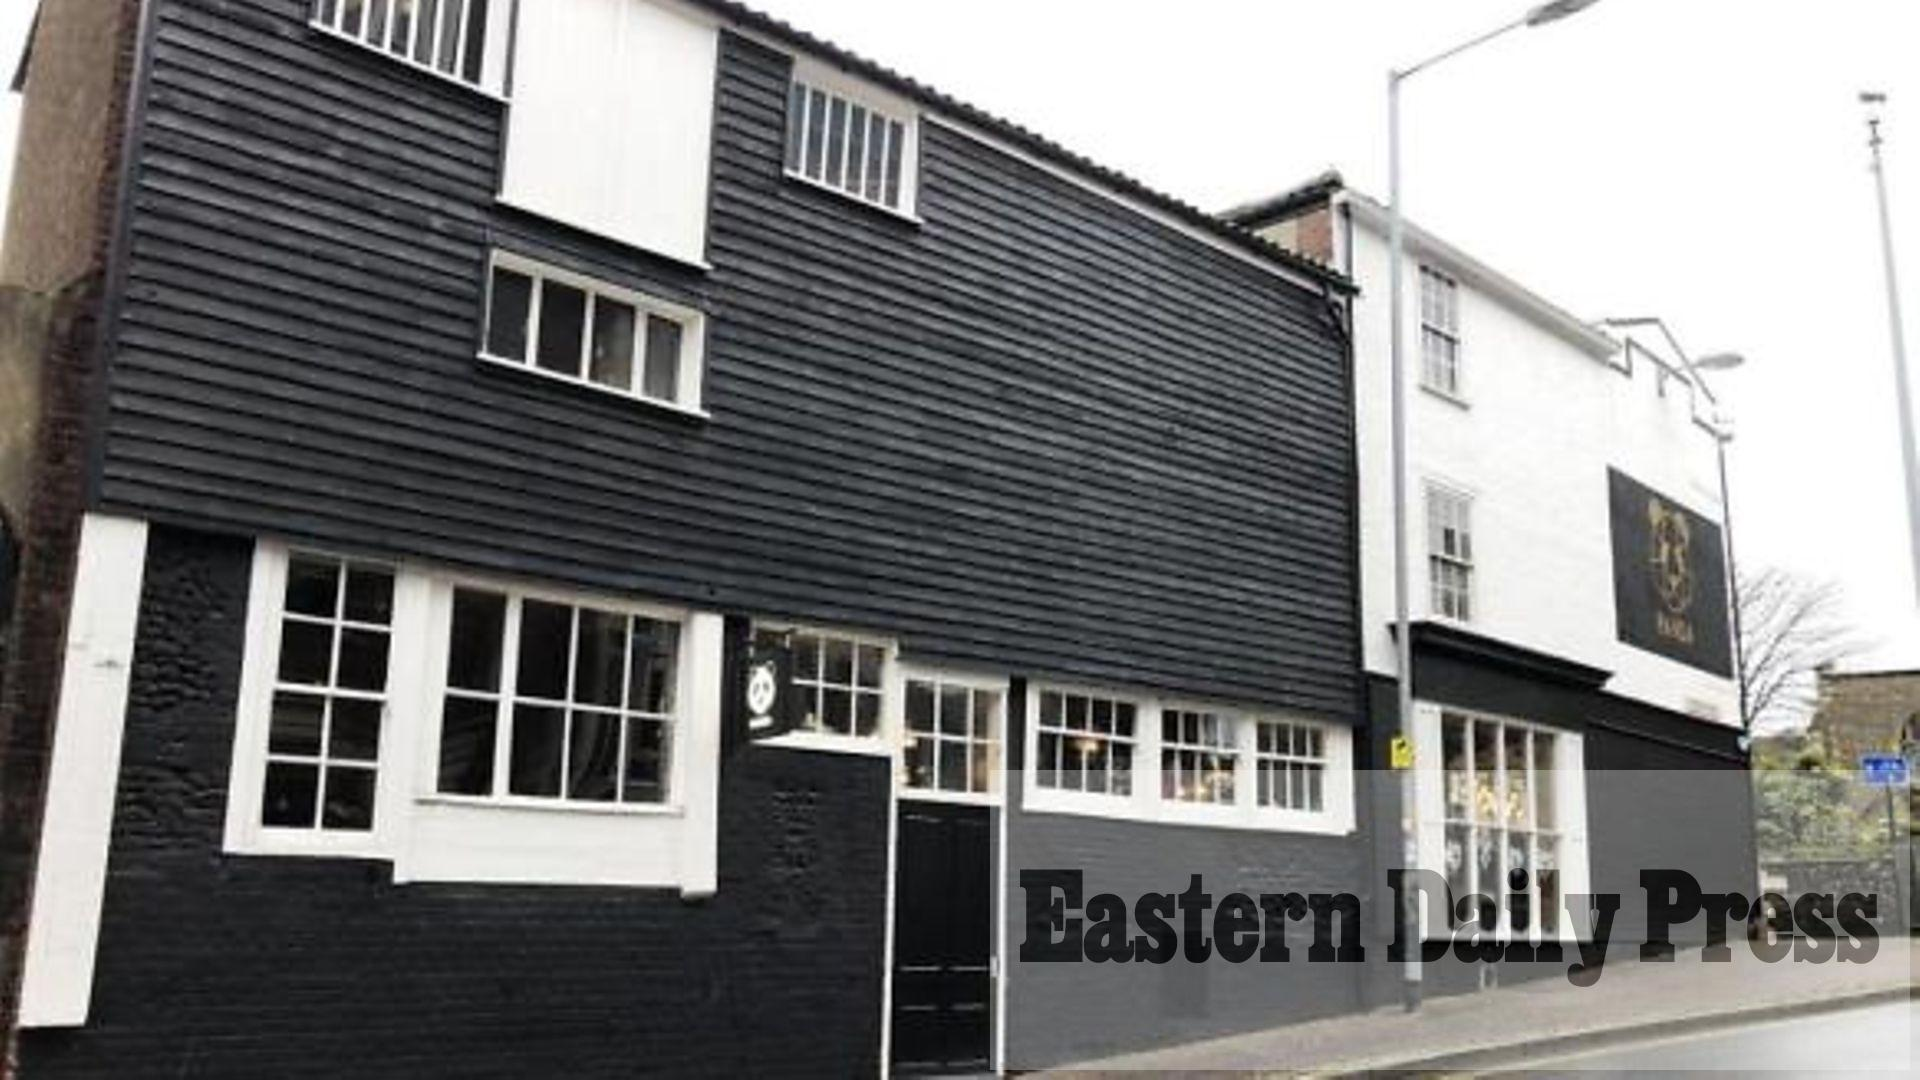 Bar for sale after businessman scraps reopening project